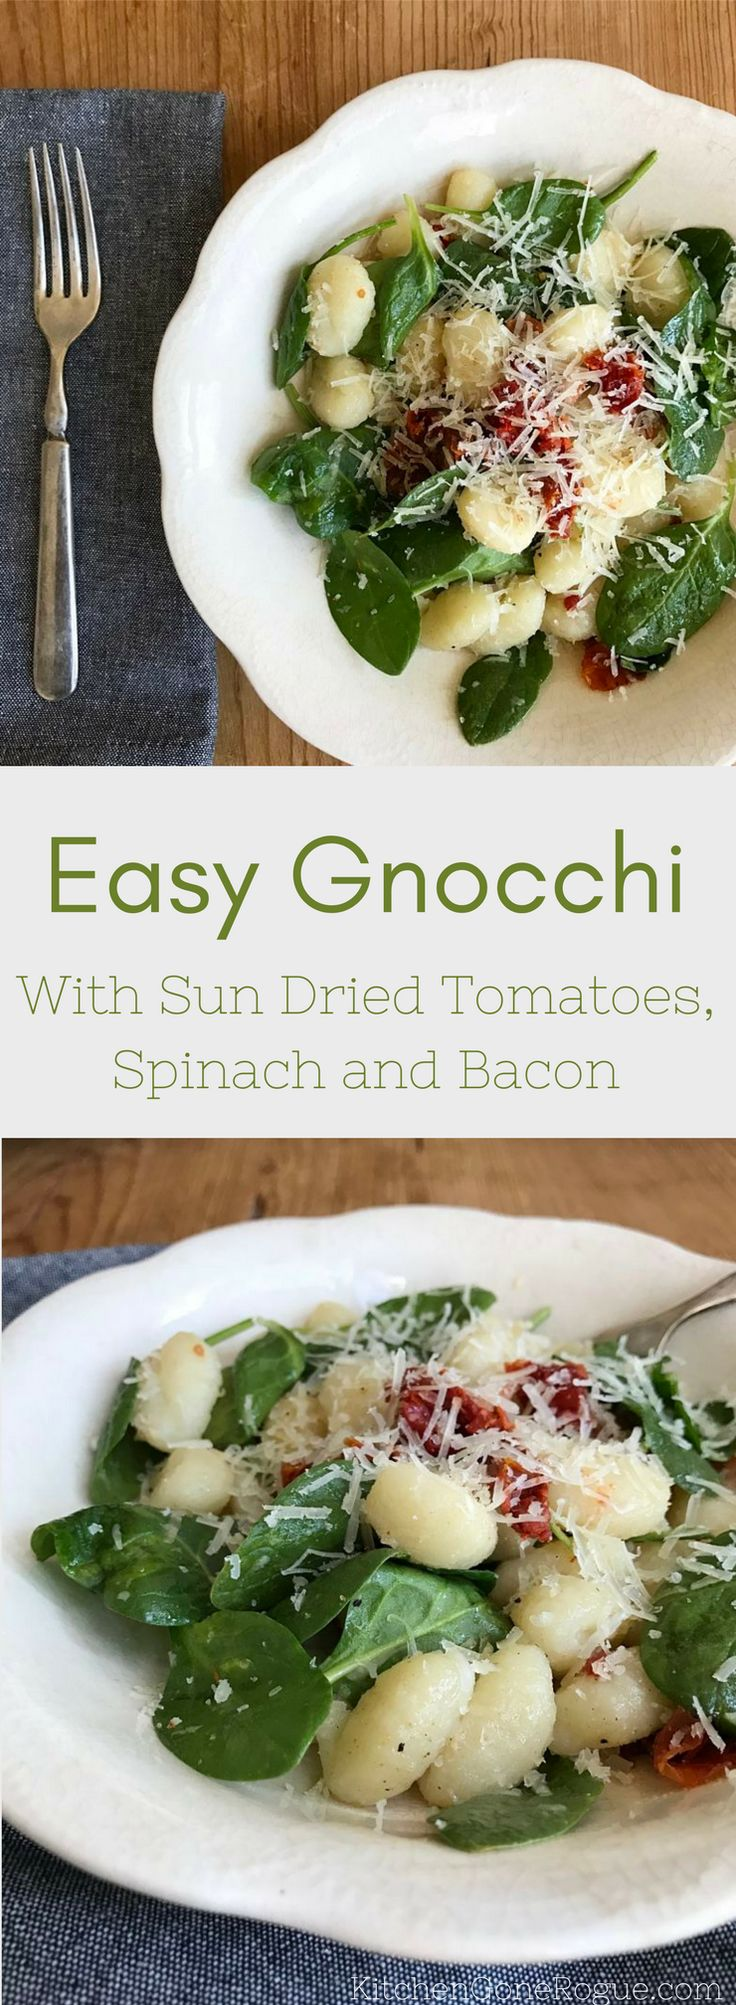 Eay Gnocchi with Sun Dried Tomatoes, Spinach and Bacon Kitchen Gone Rogue